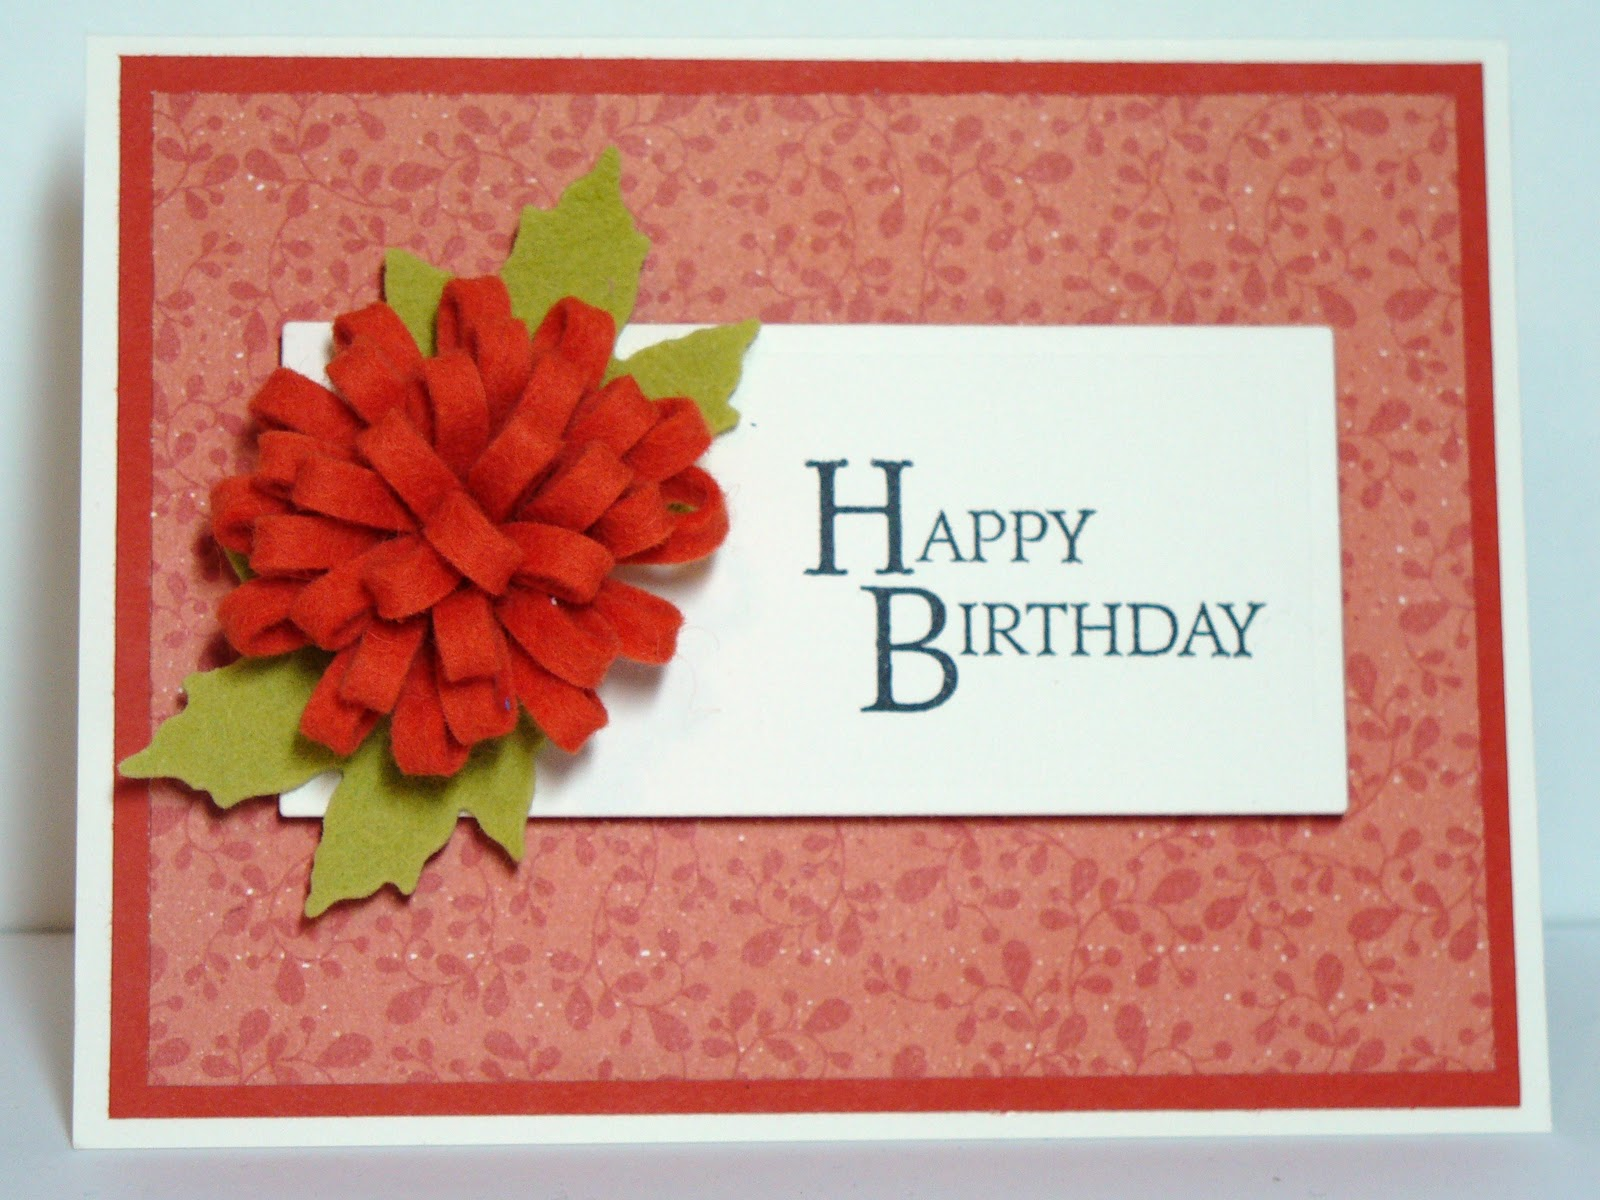 Barbs bunny hutch felt flower birthday card izmirmasajfo